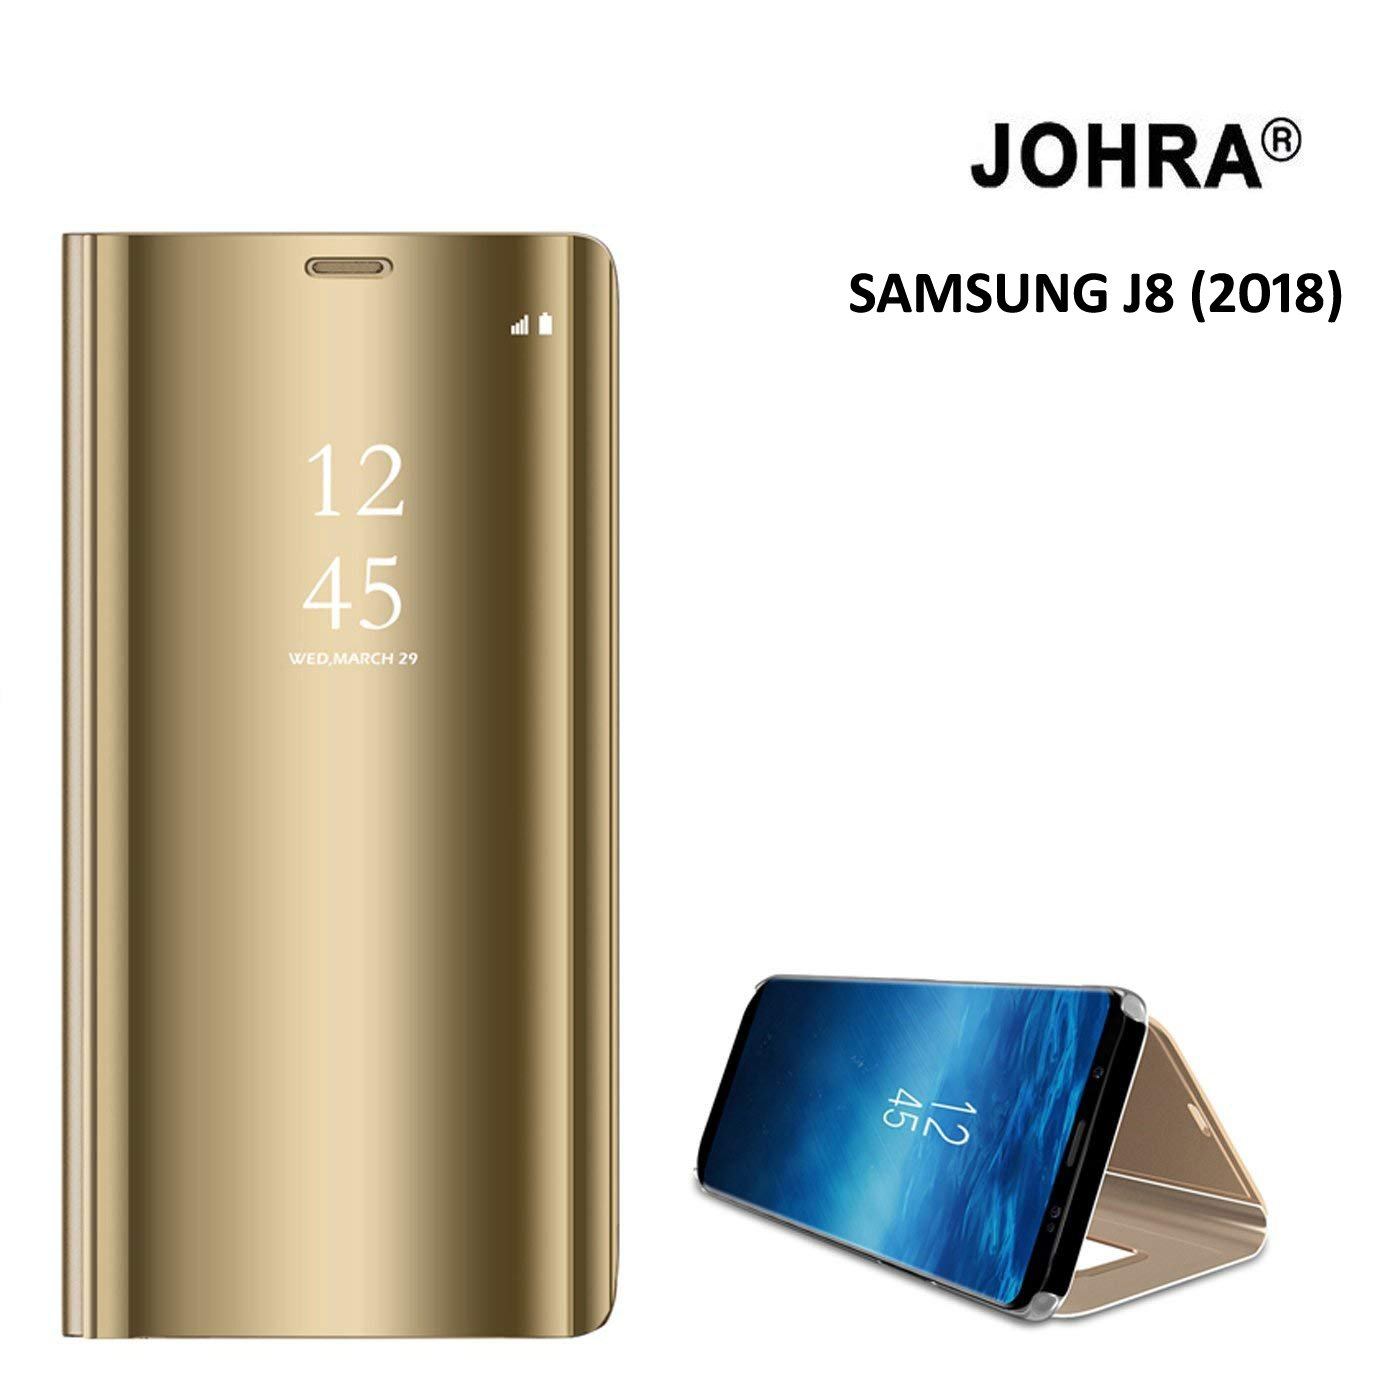 online store a0997 bbf8a Samsung J8 Flip Cover - Johra Luxury Clear View Electroplate Plating Mirror  Acrylic Full Body Protective Leather Gold Golden Flip Case Cover for ...